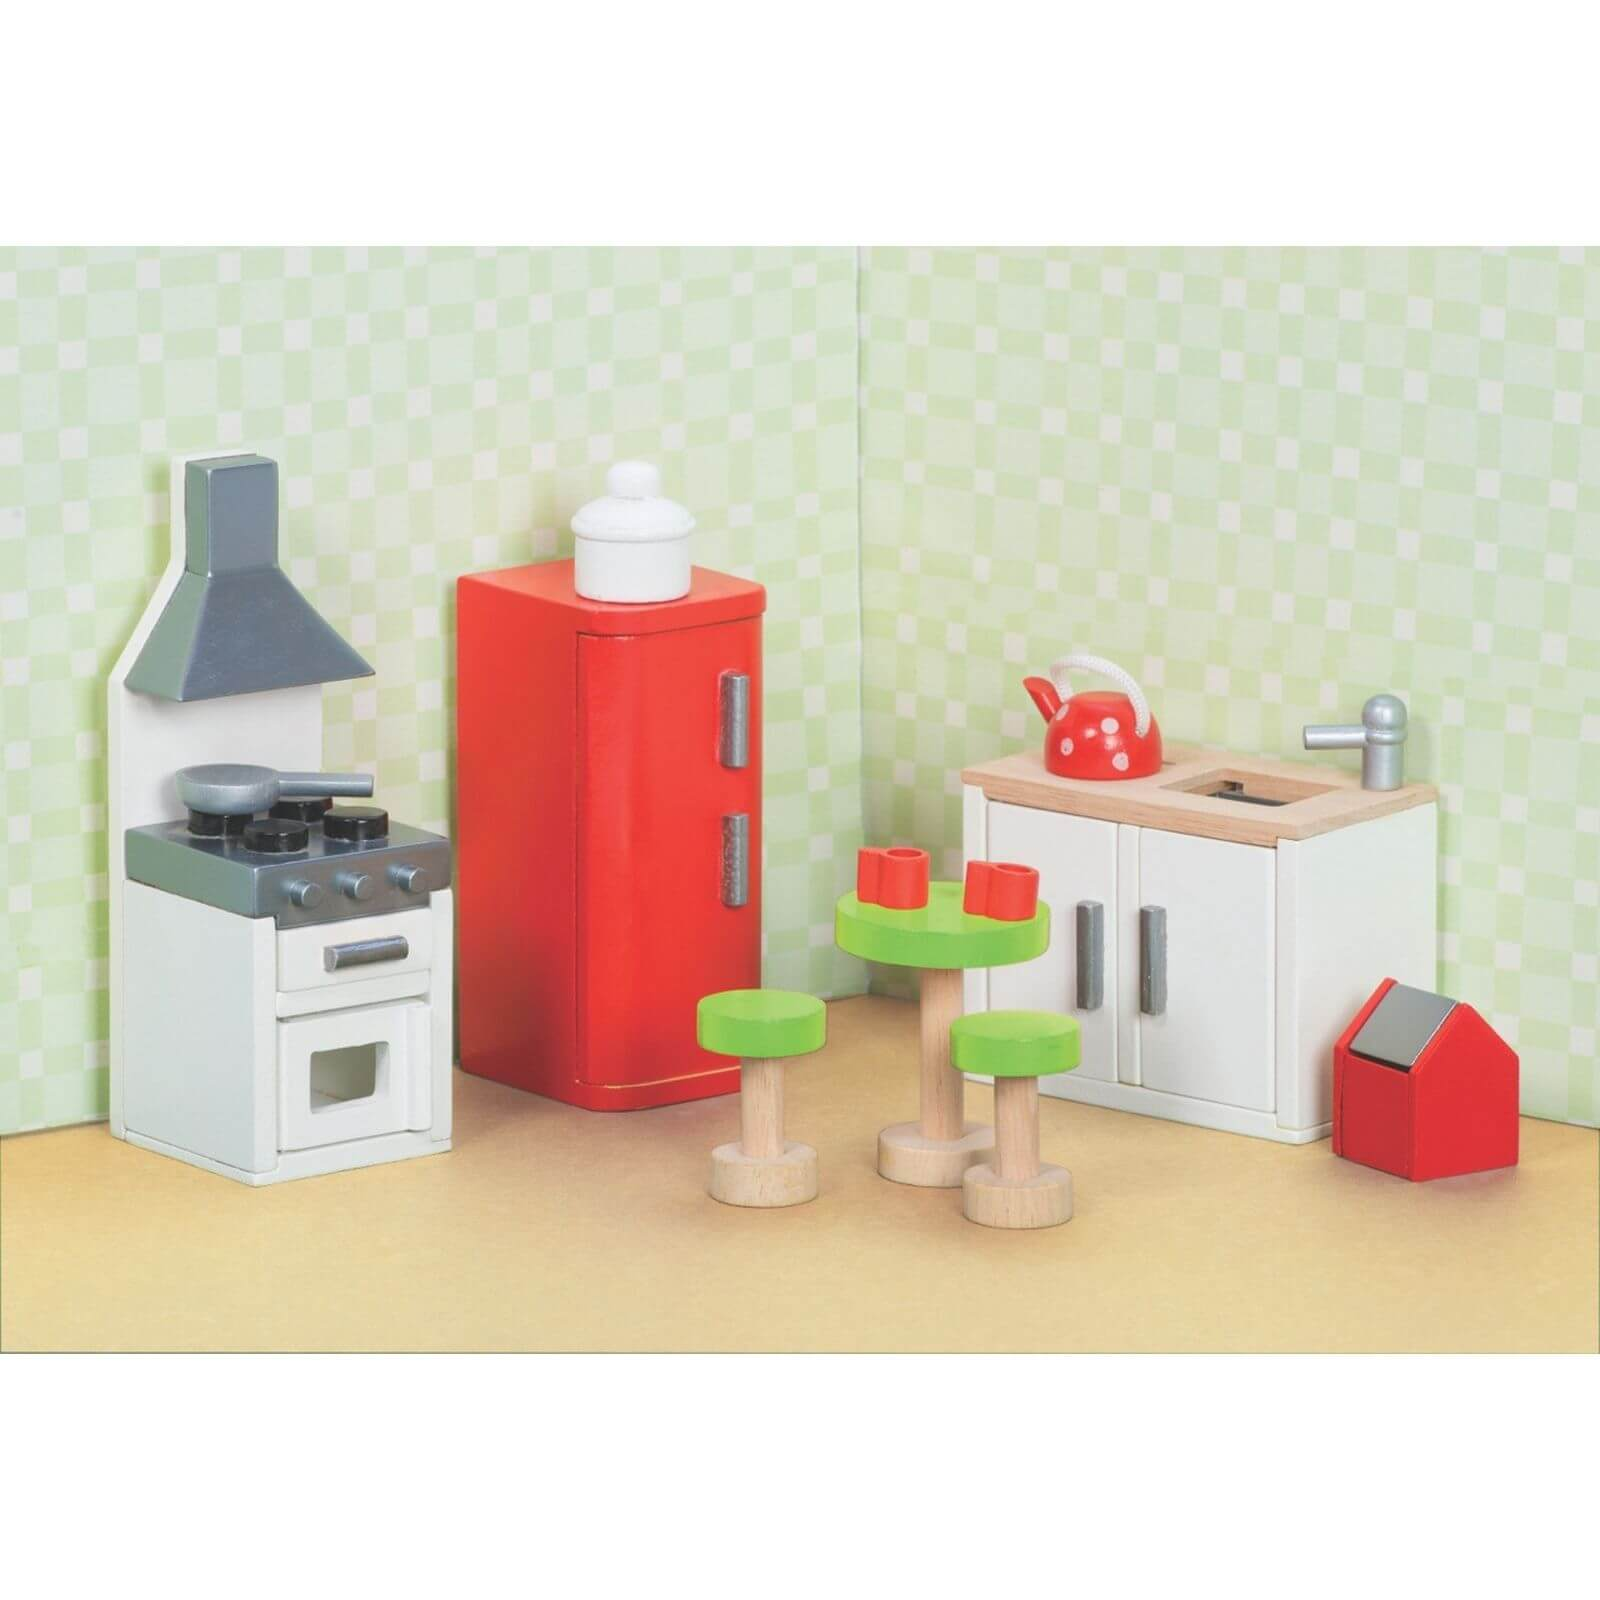 Kitchen Furniture Australia: Le Toy Van Sugar Plum Kitchen Wooden Dolls House Furniture